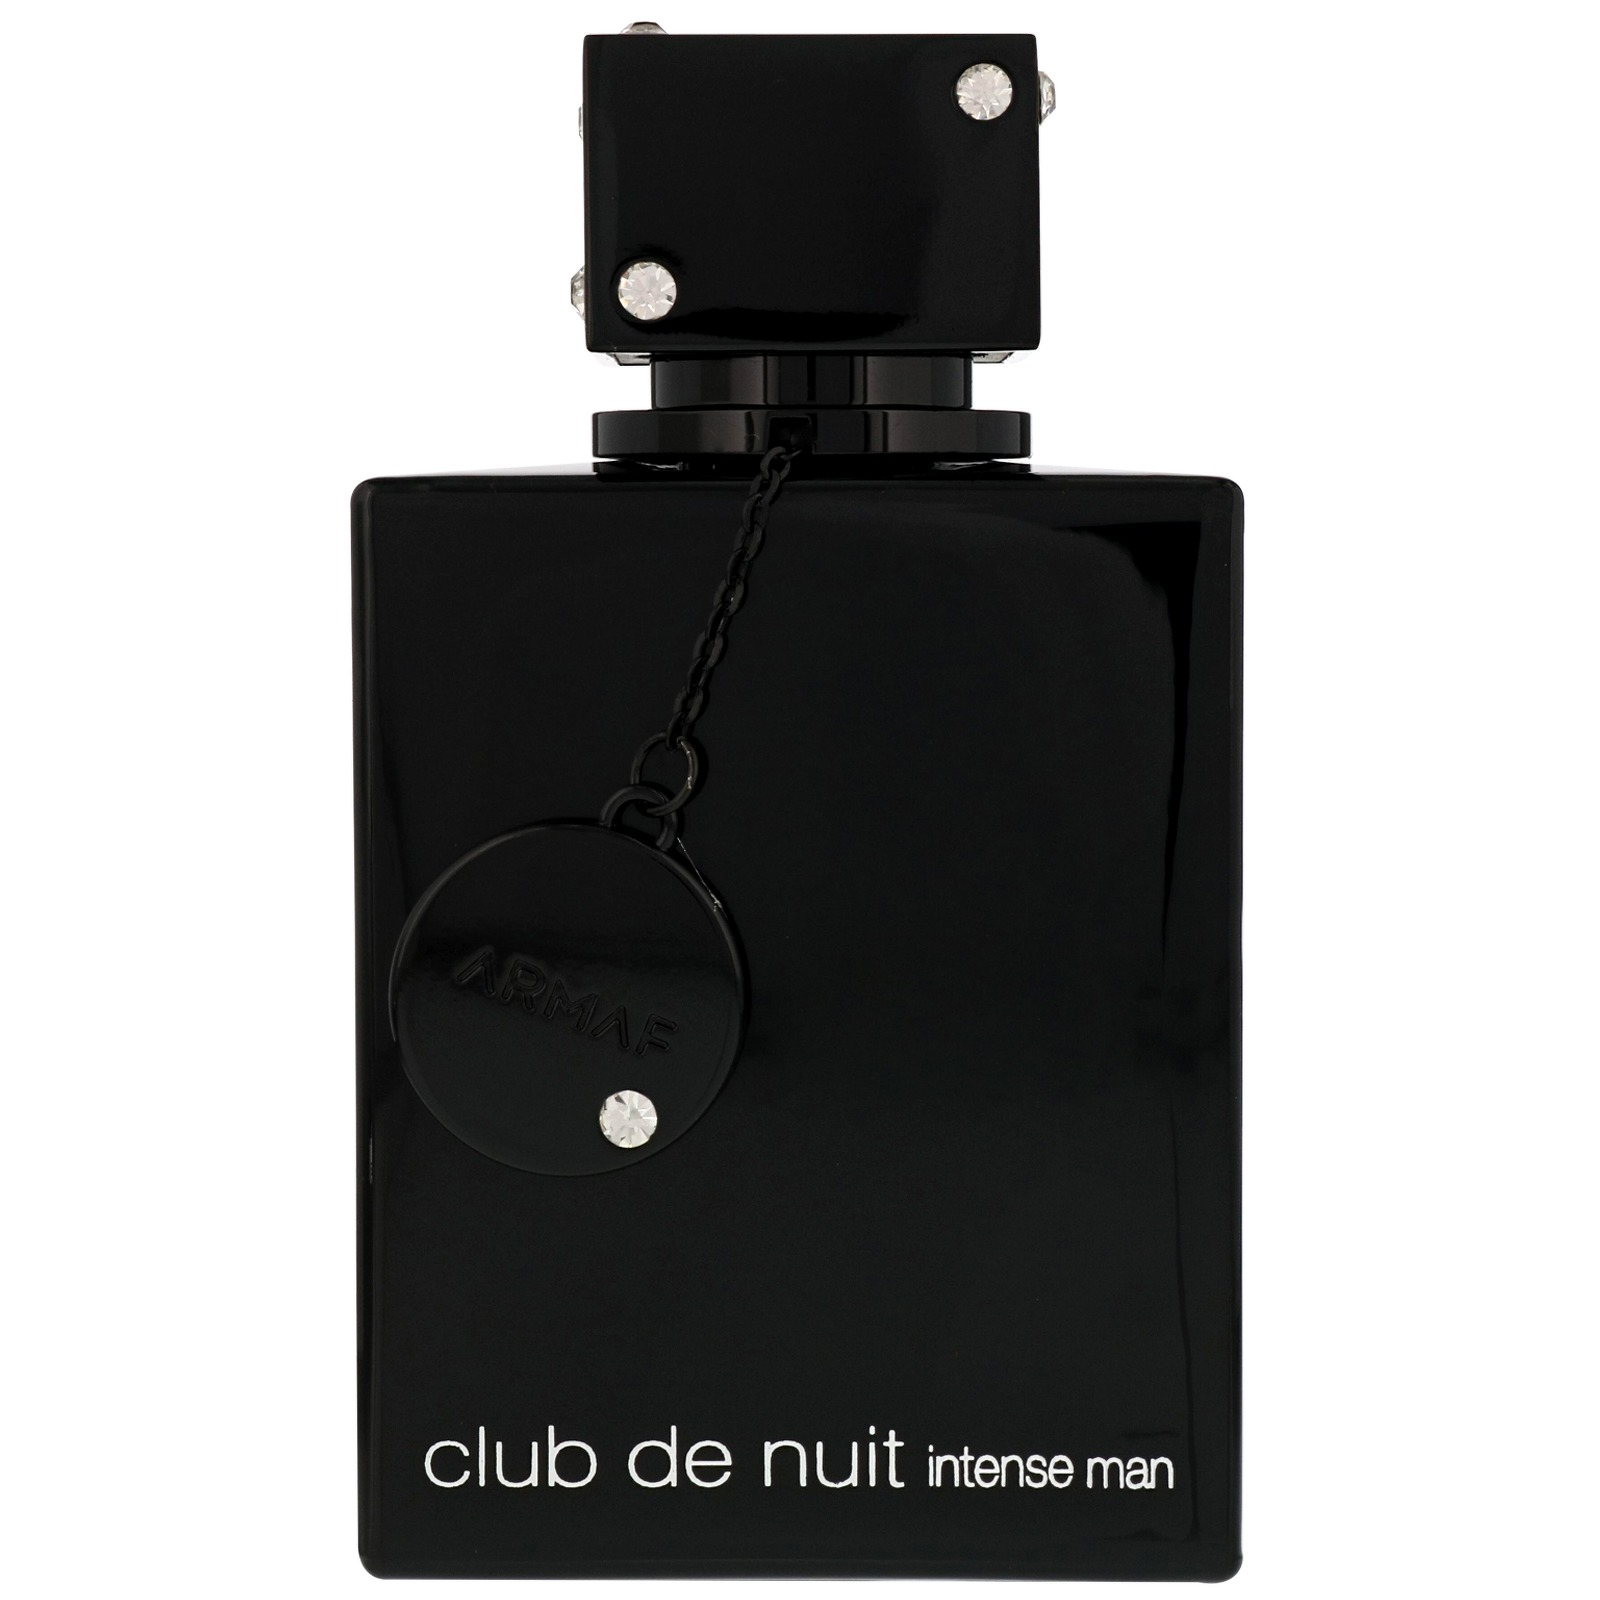 Armaf Club De Nuit Intense Man Eau de Toilette Spray 105ml